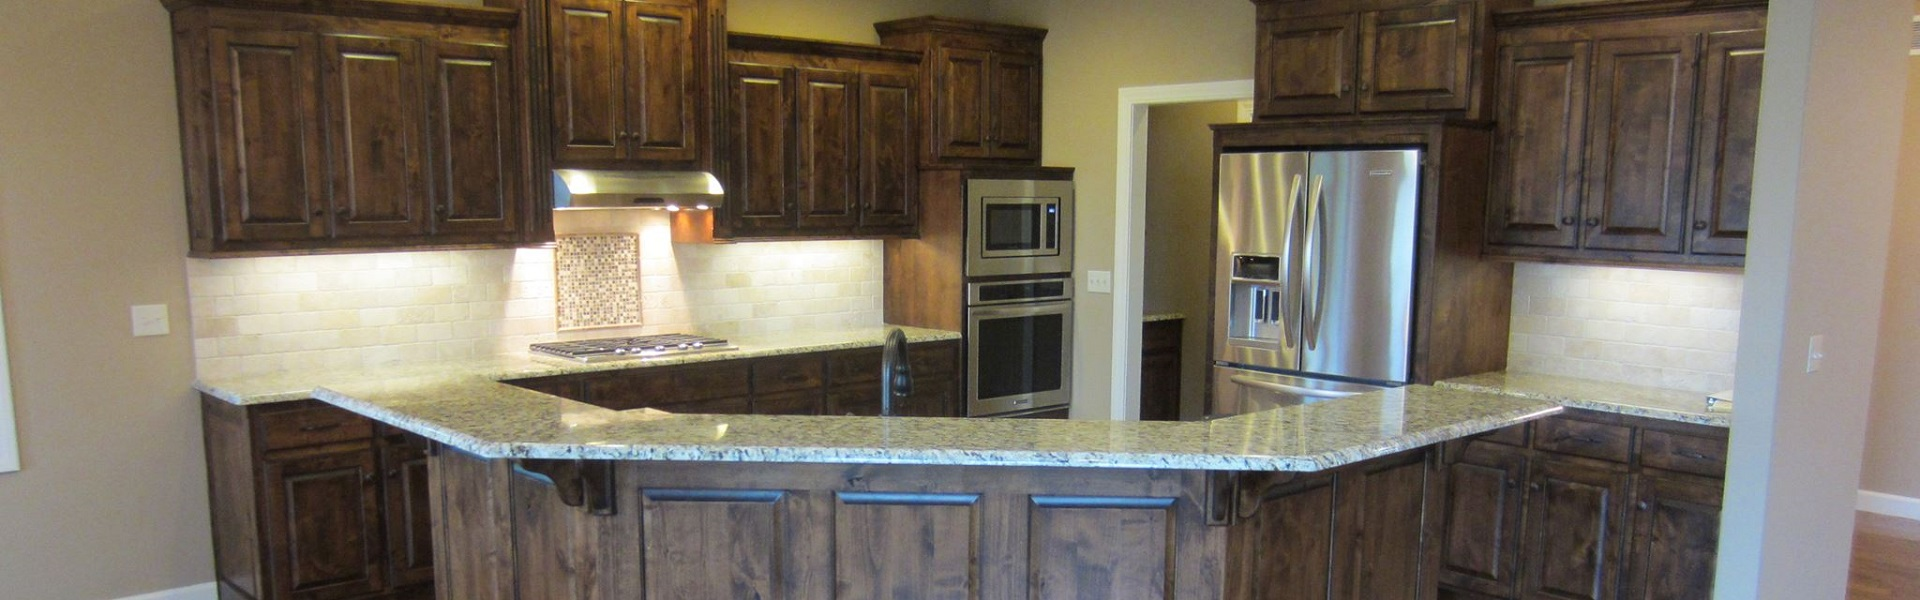 kitchen-cabinets-kansas-city-slider